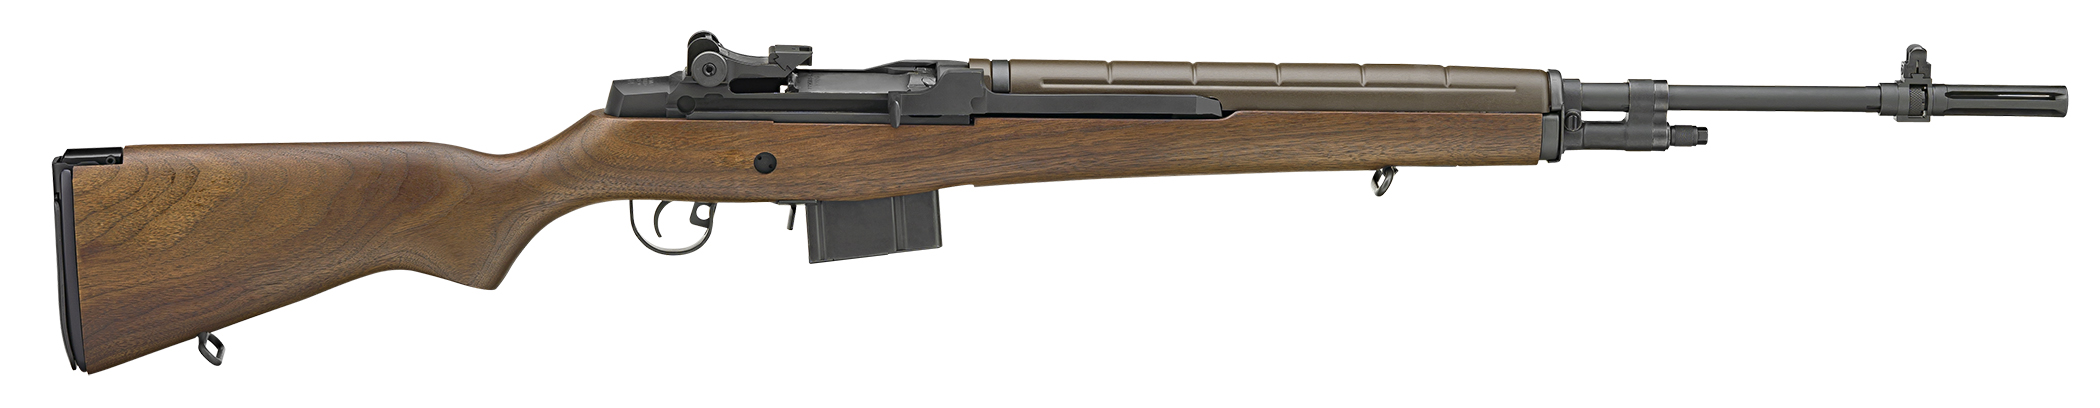 Springfield Armory M1A LOADED 7.62 X 51MM | 308 WIN